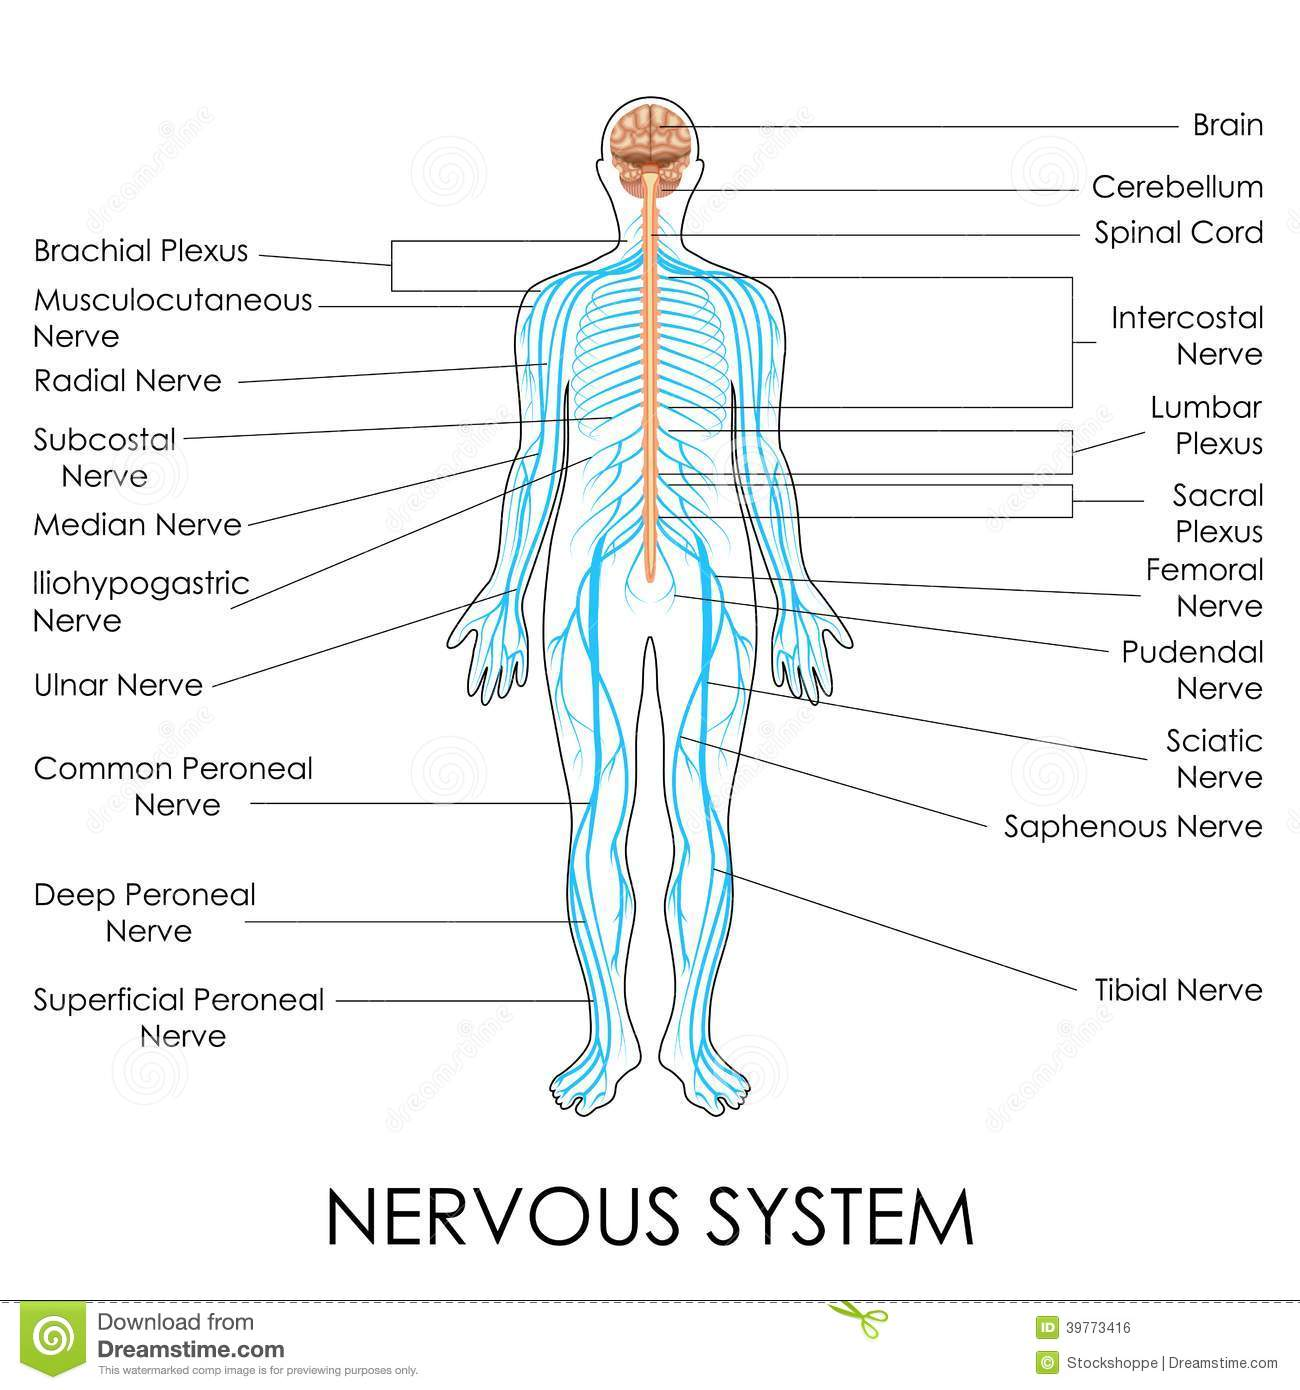 Nervous system stock vector illustration of neuron education nervous system stock vector illustration of neuron education 39773416 ccuart Gallery